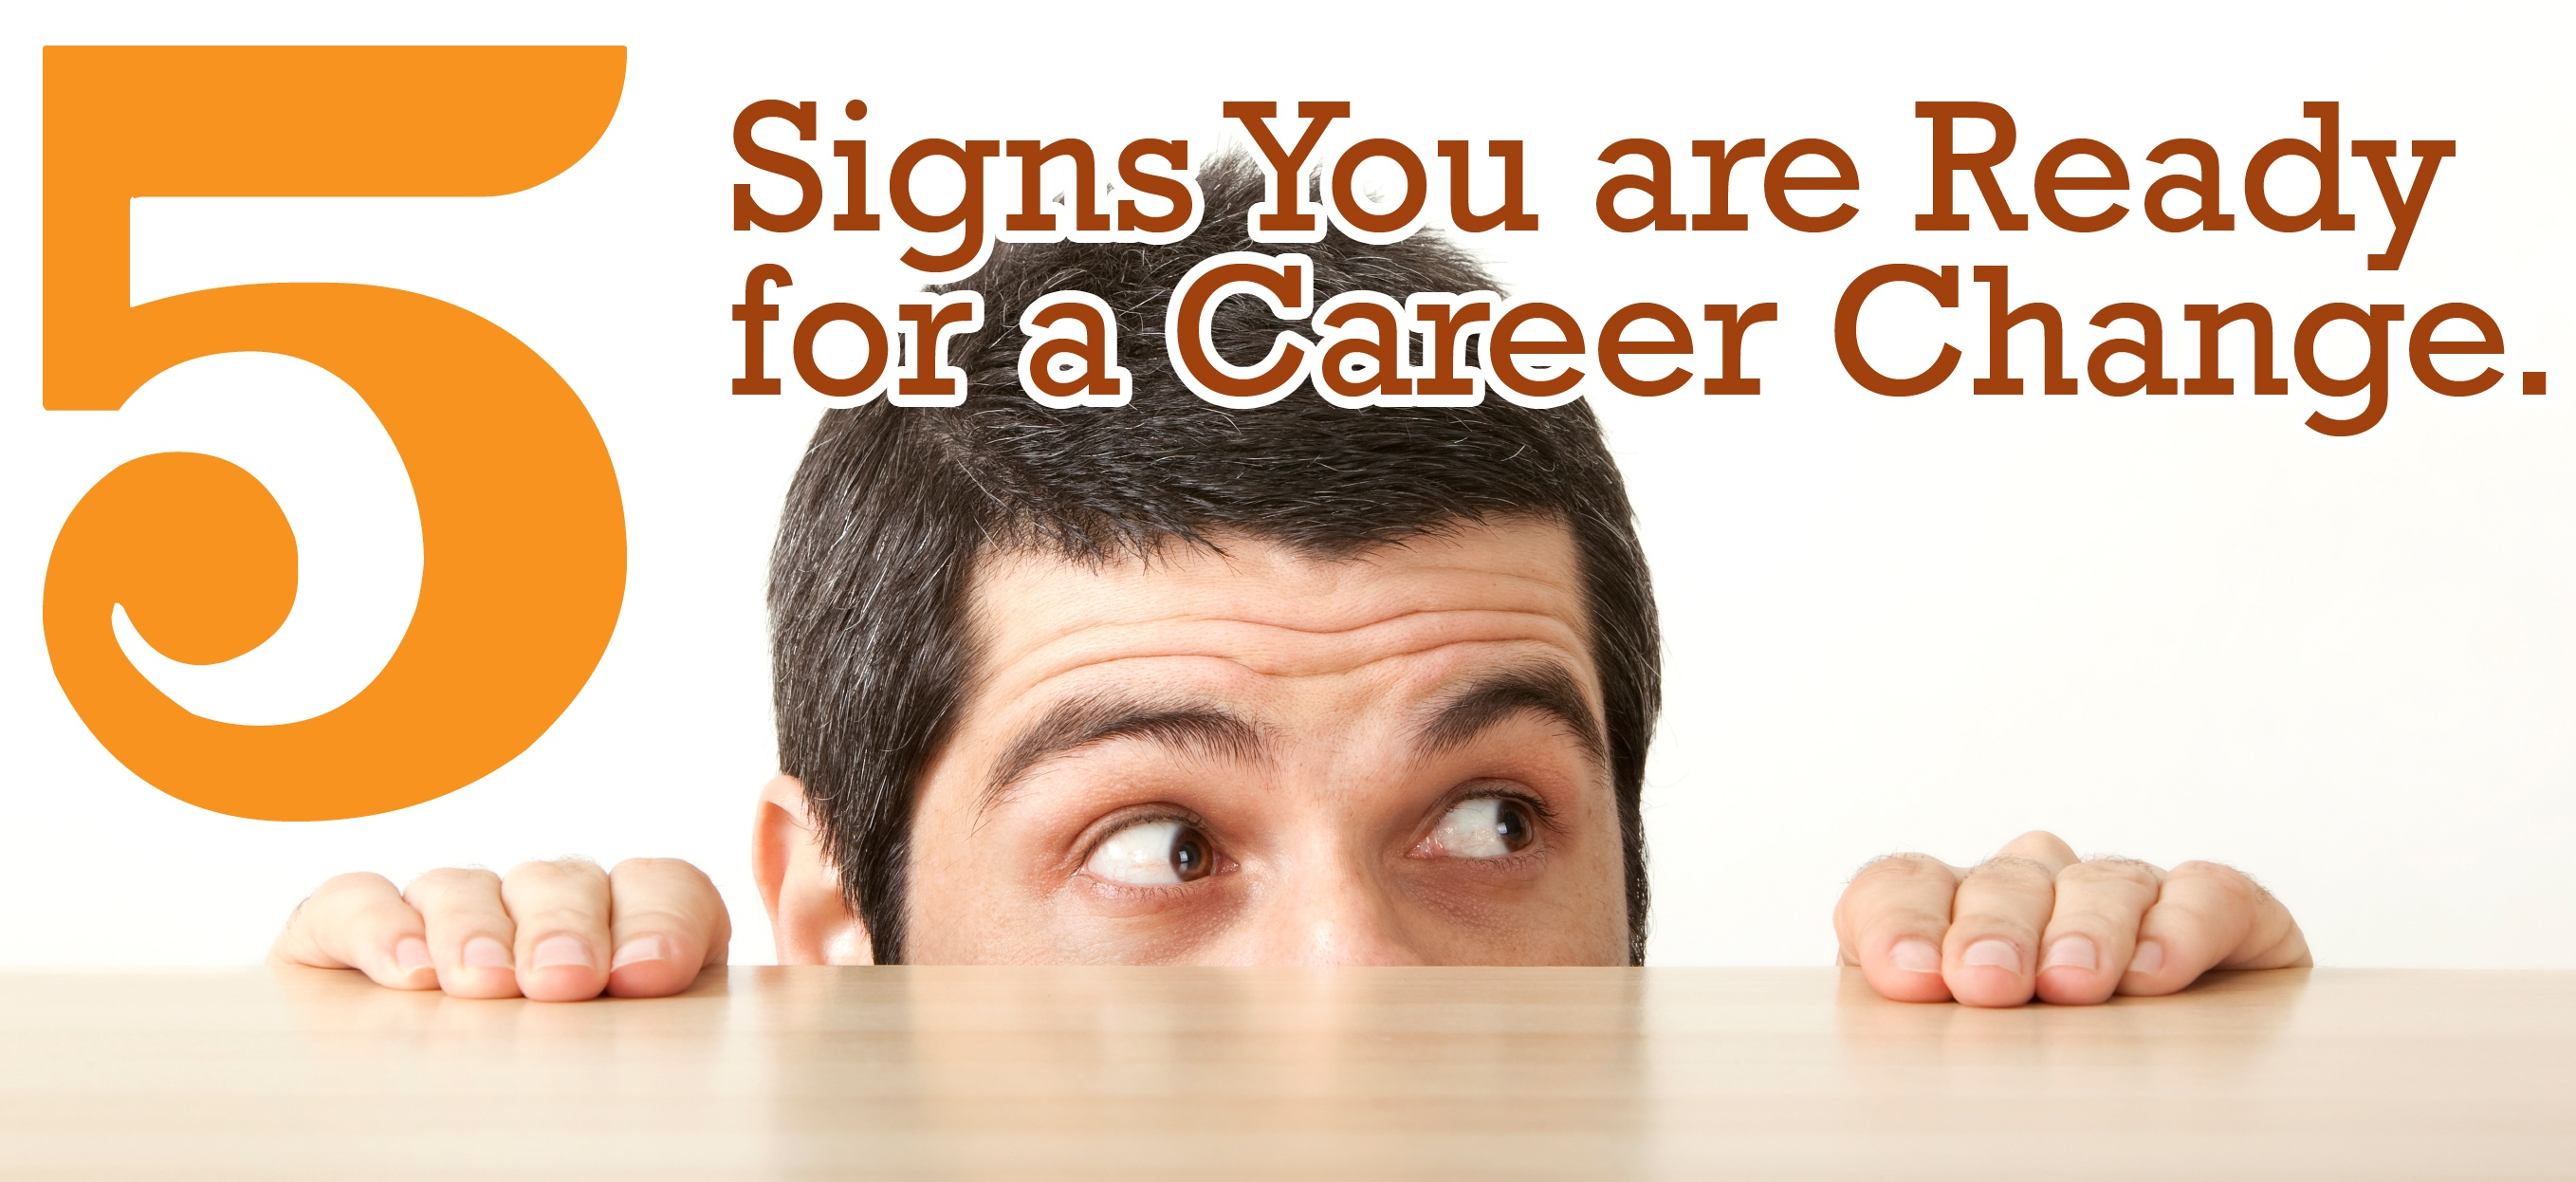 5 Signs You Are Ready for a Career Change